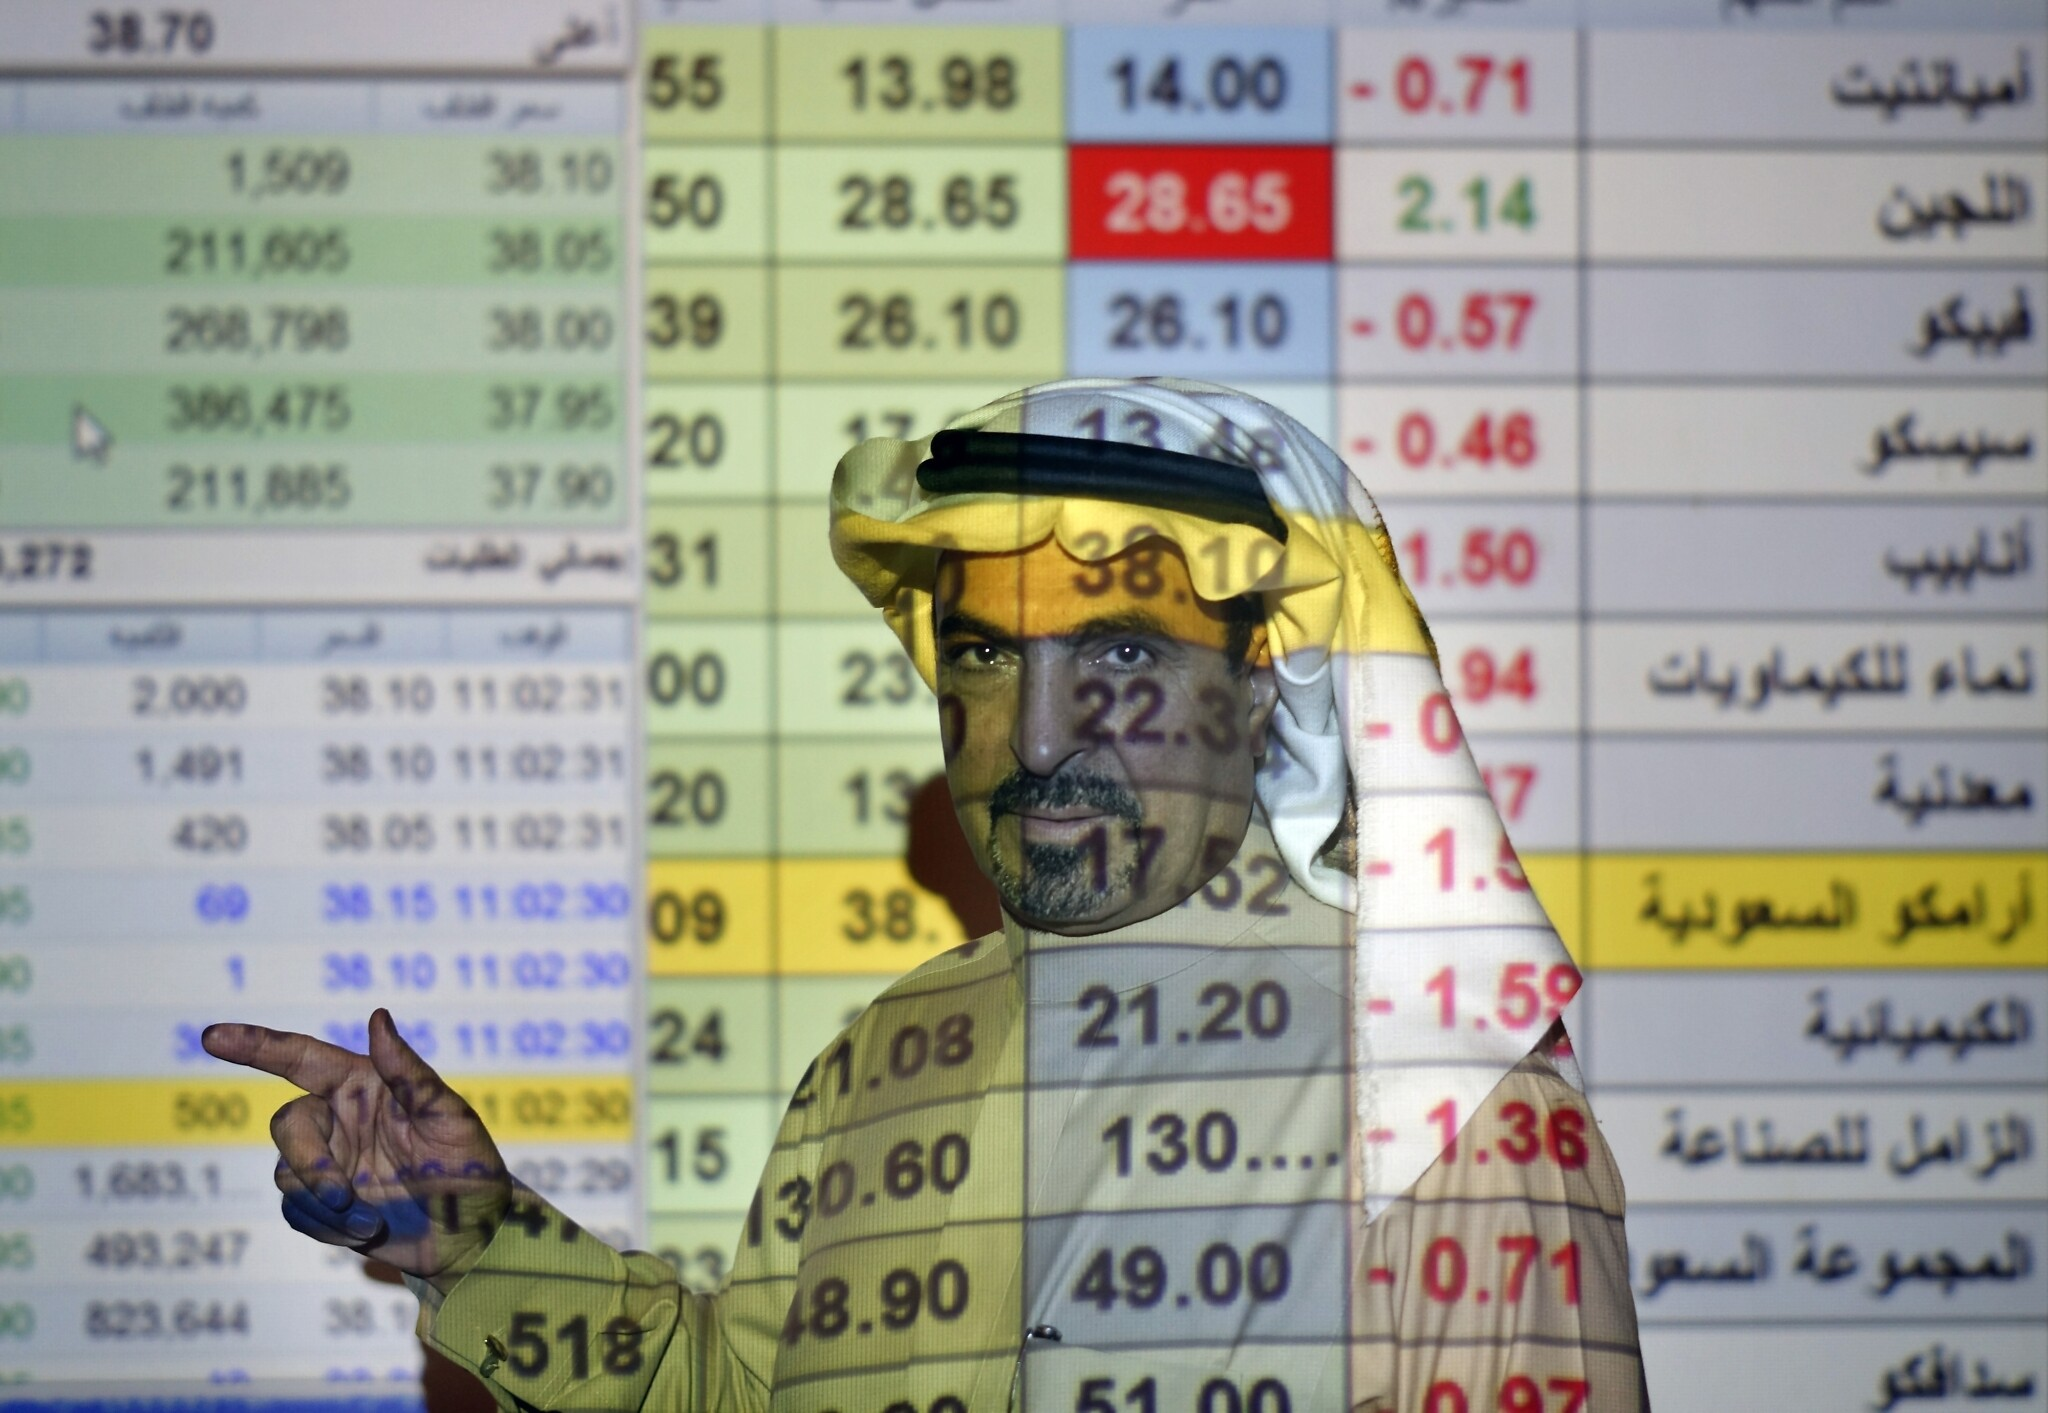 Saudi Aramco shares shed post-IPO gains as oil dives due to coronavirus : The Times of Israel